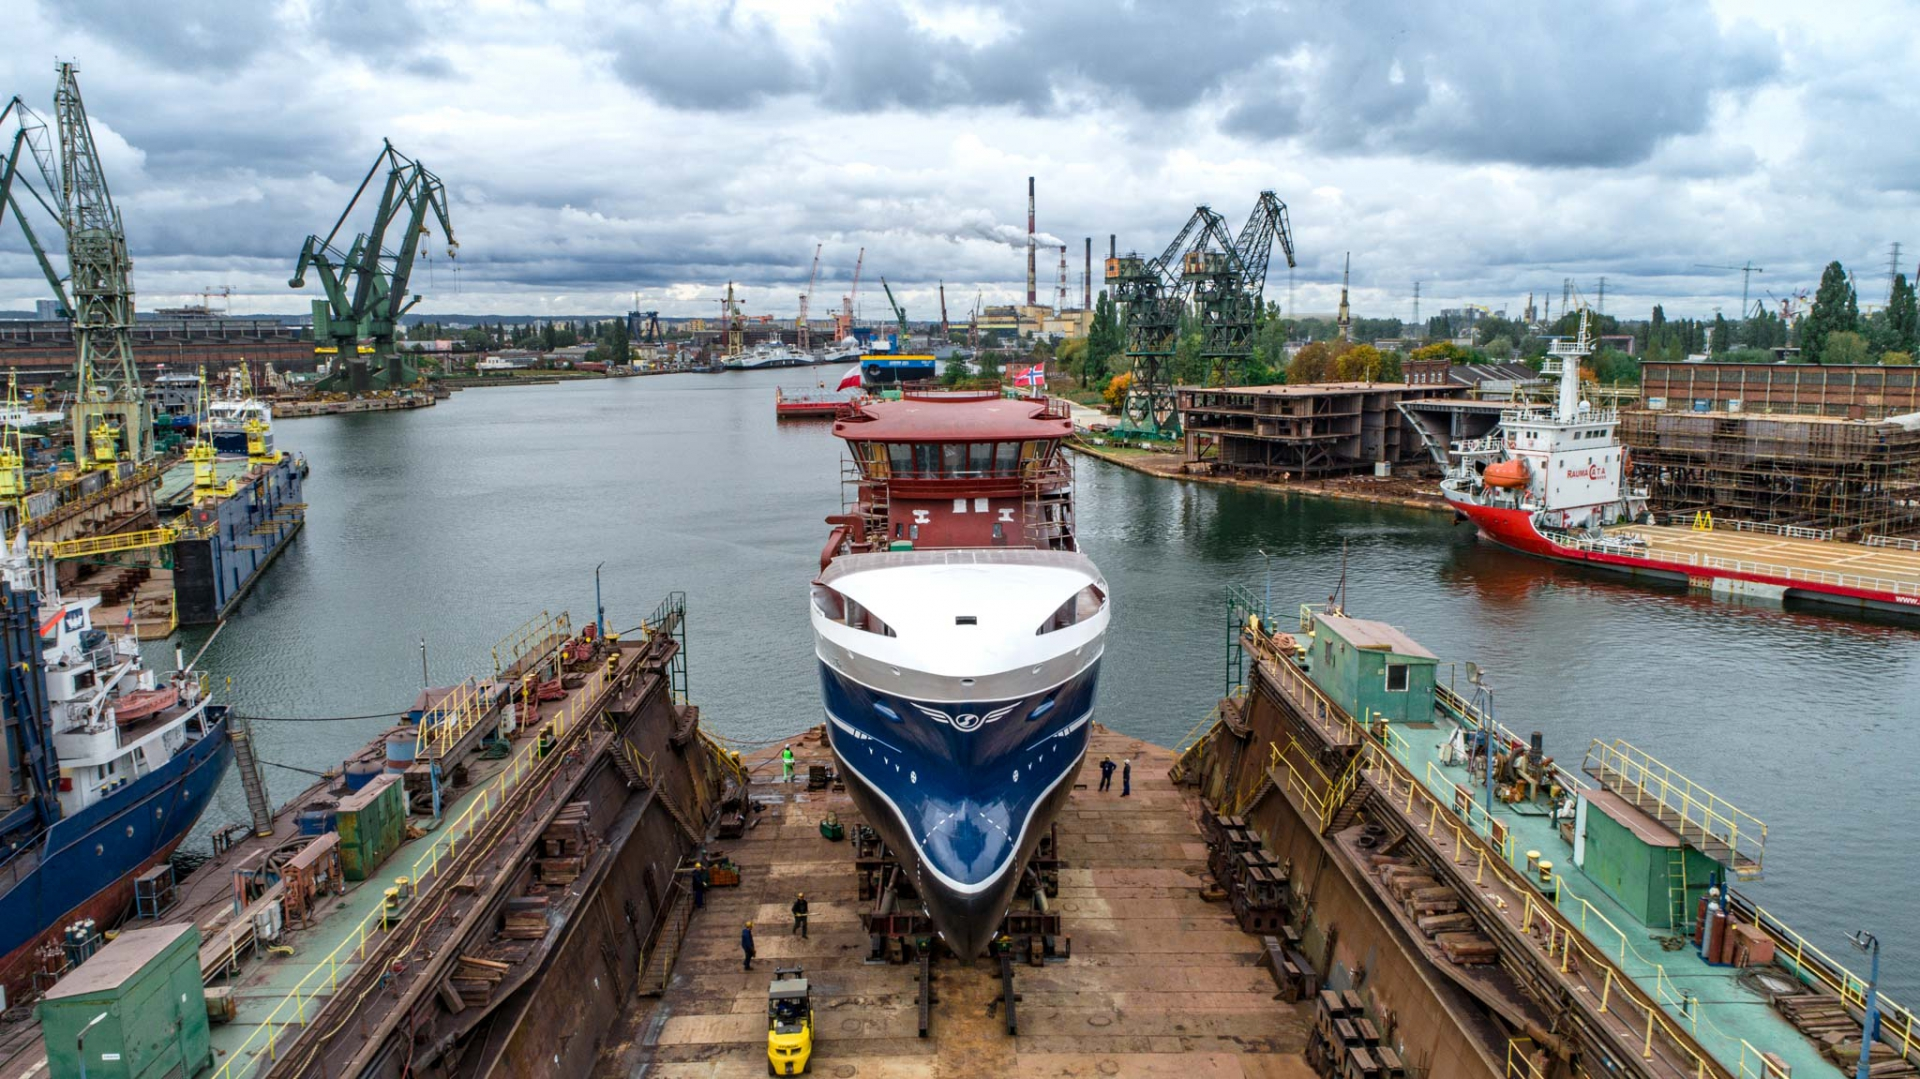 Safe Shipyard launched a fishing vessel for Norwegians (photo, video)